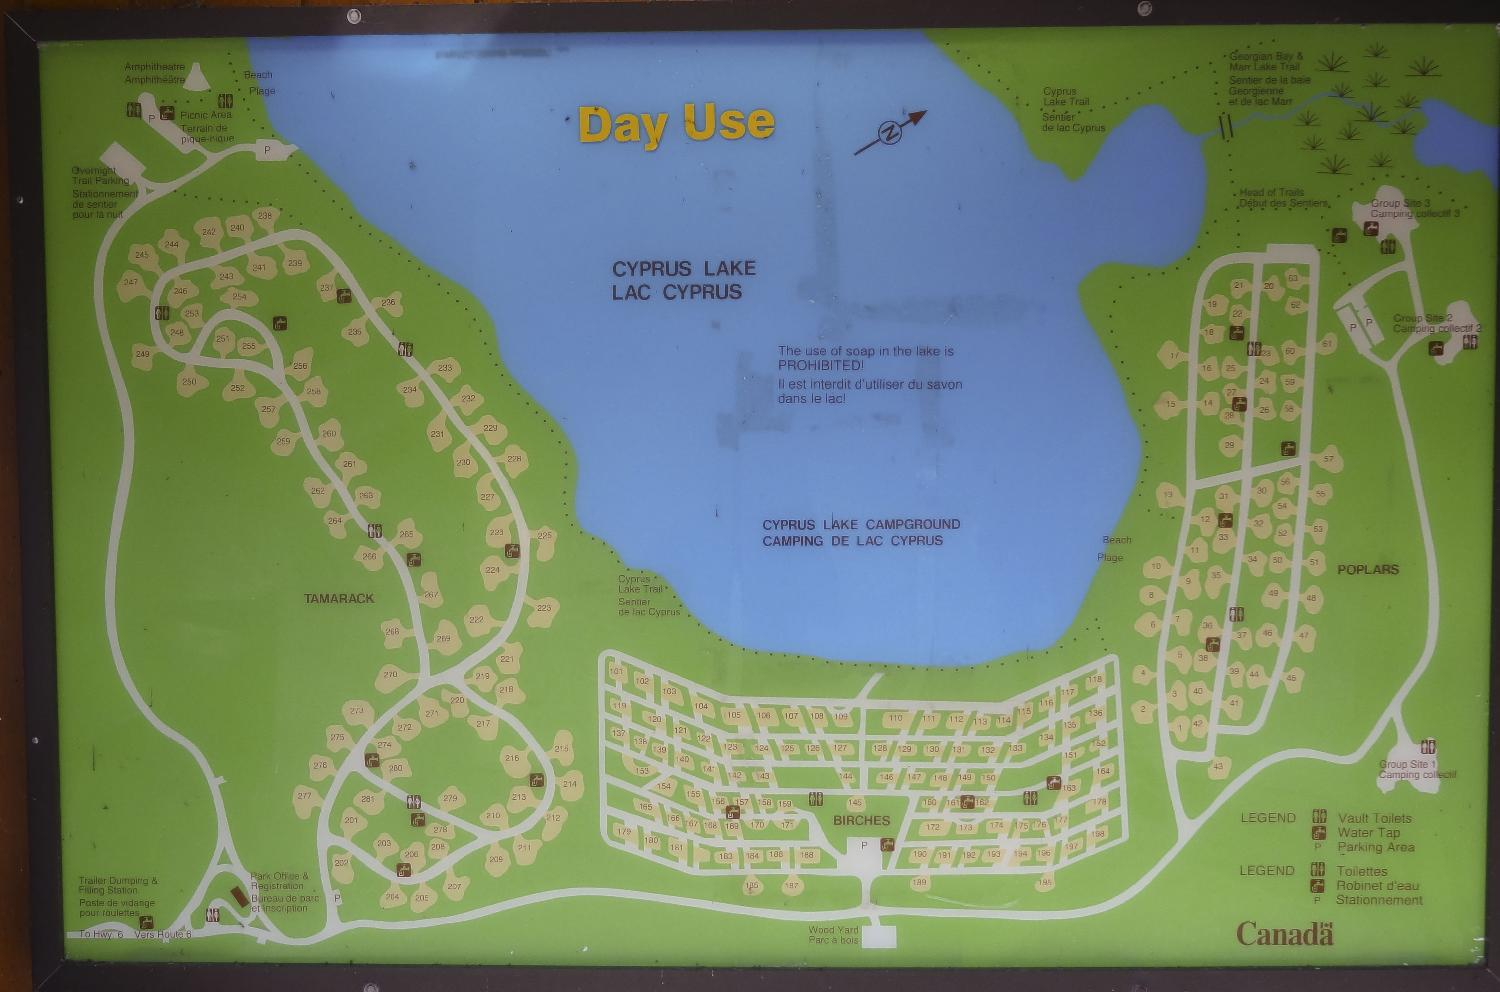 Map of cyprus lake campground my world of photos map of cyprus lake campground gumiabroncs Choice Image